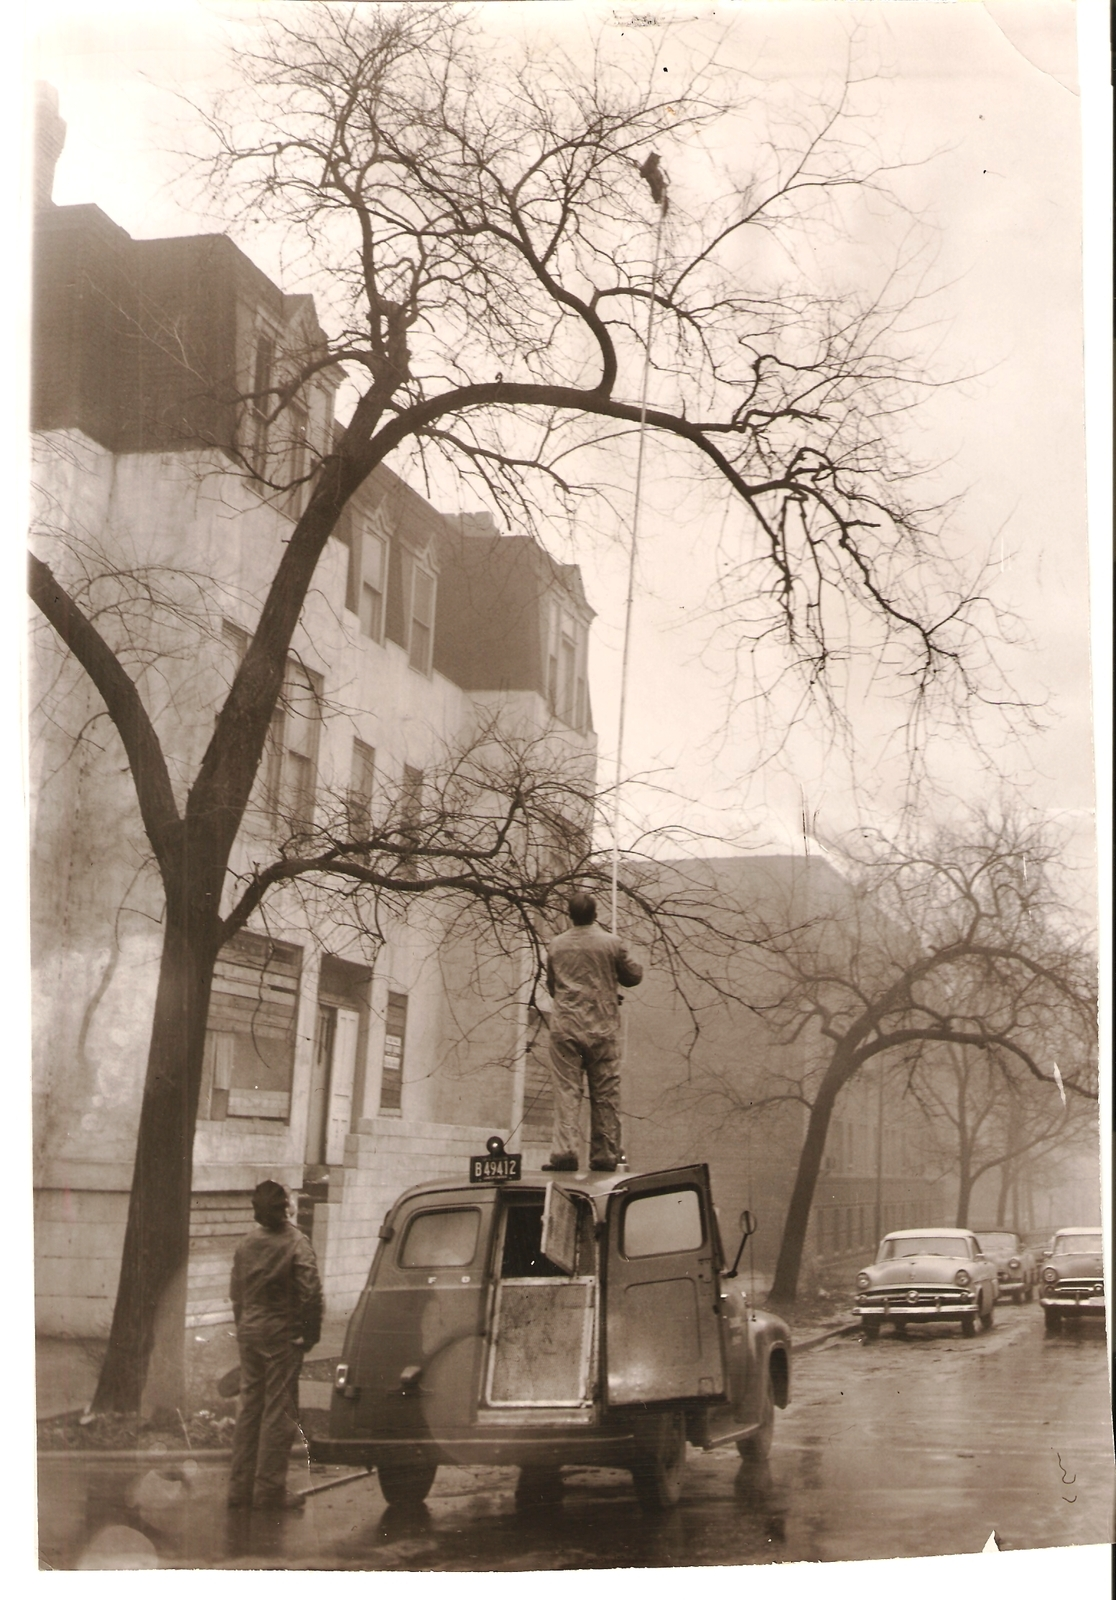 calumet412: Rescuing a cat at Cornelia and Wilton in Lake View, 1959, Chicago